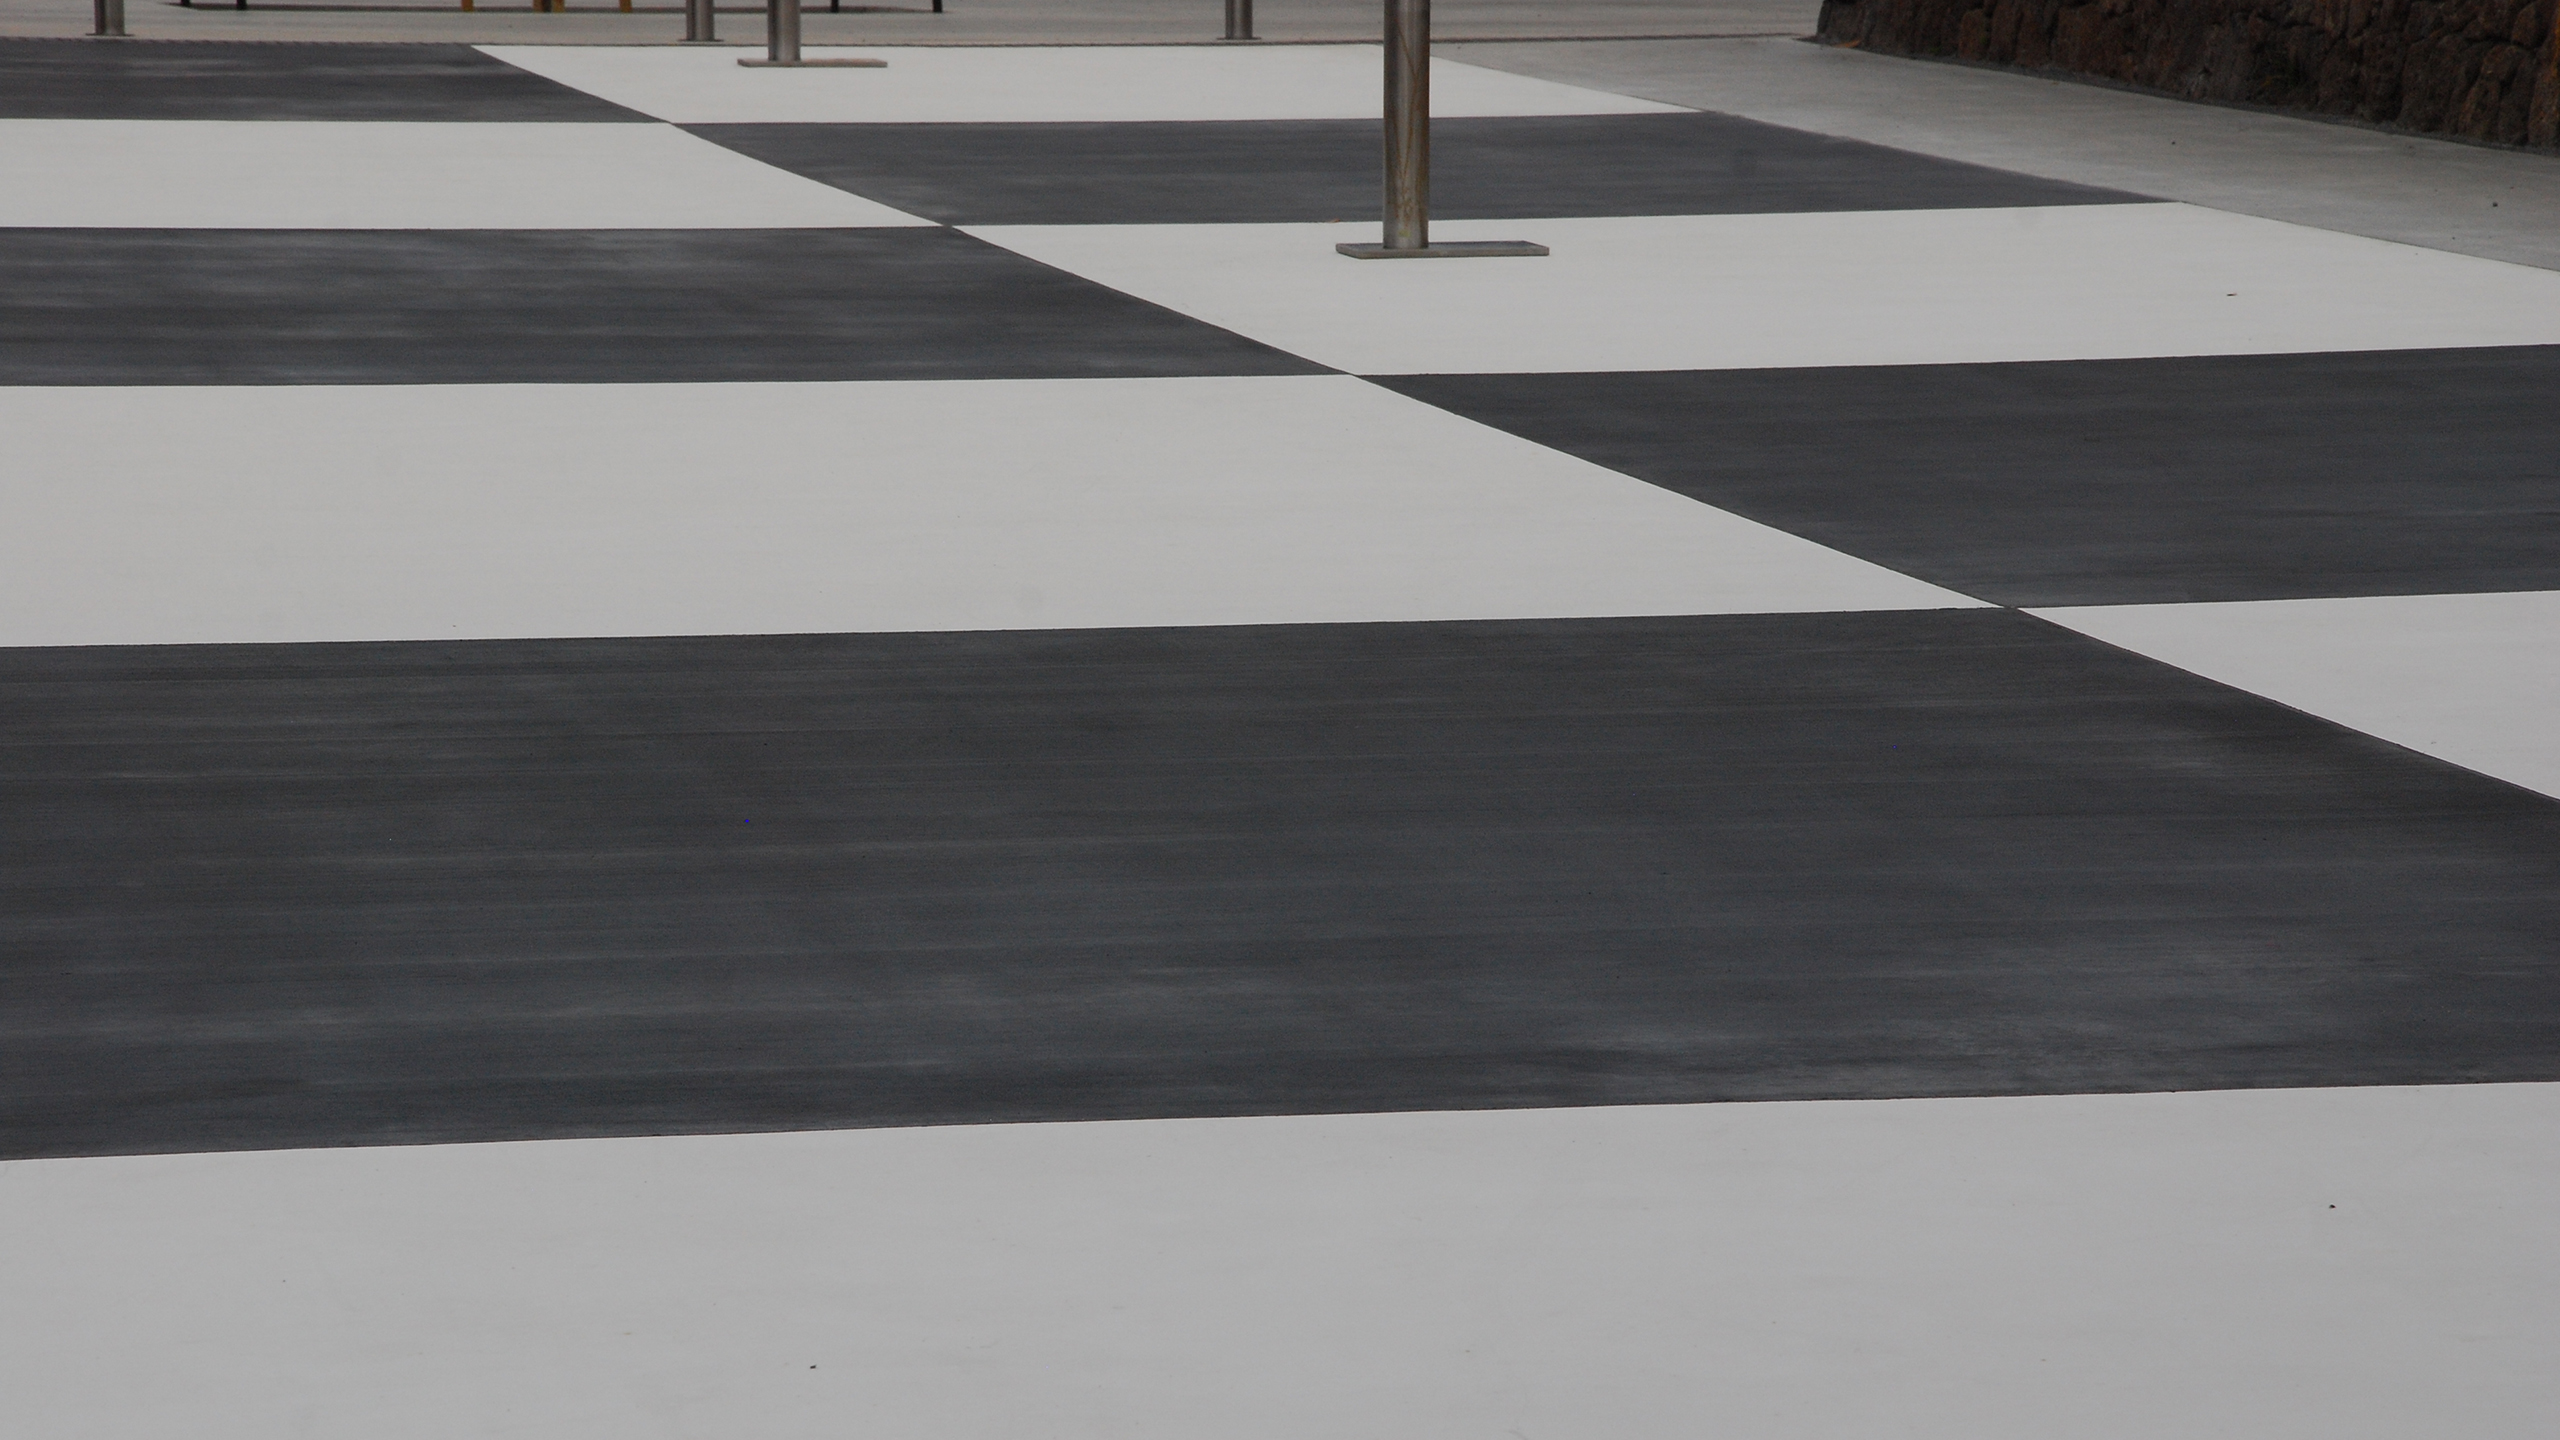 black and white patterned concrete path.